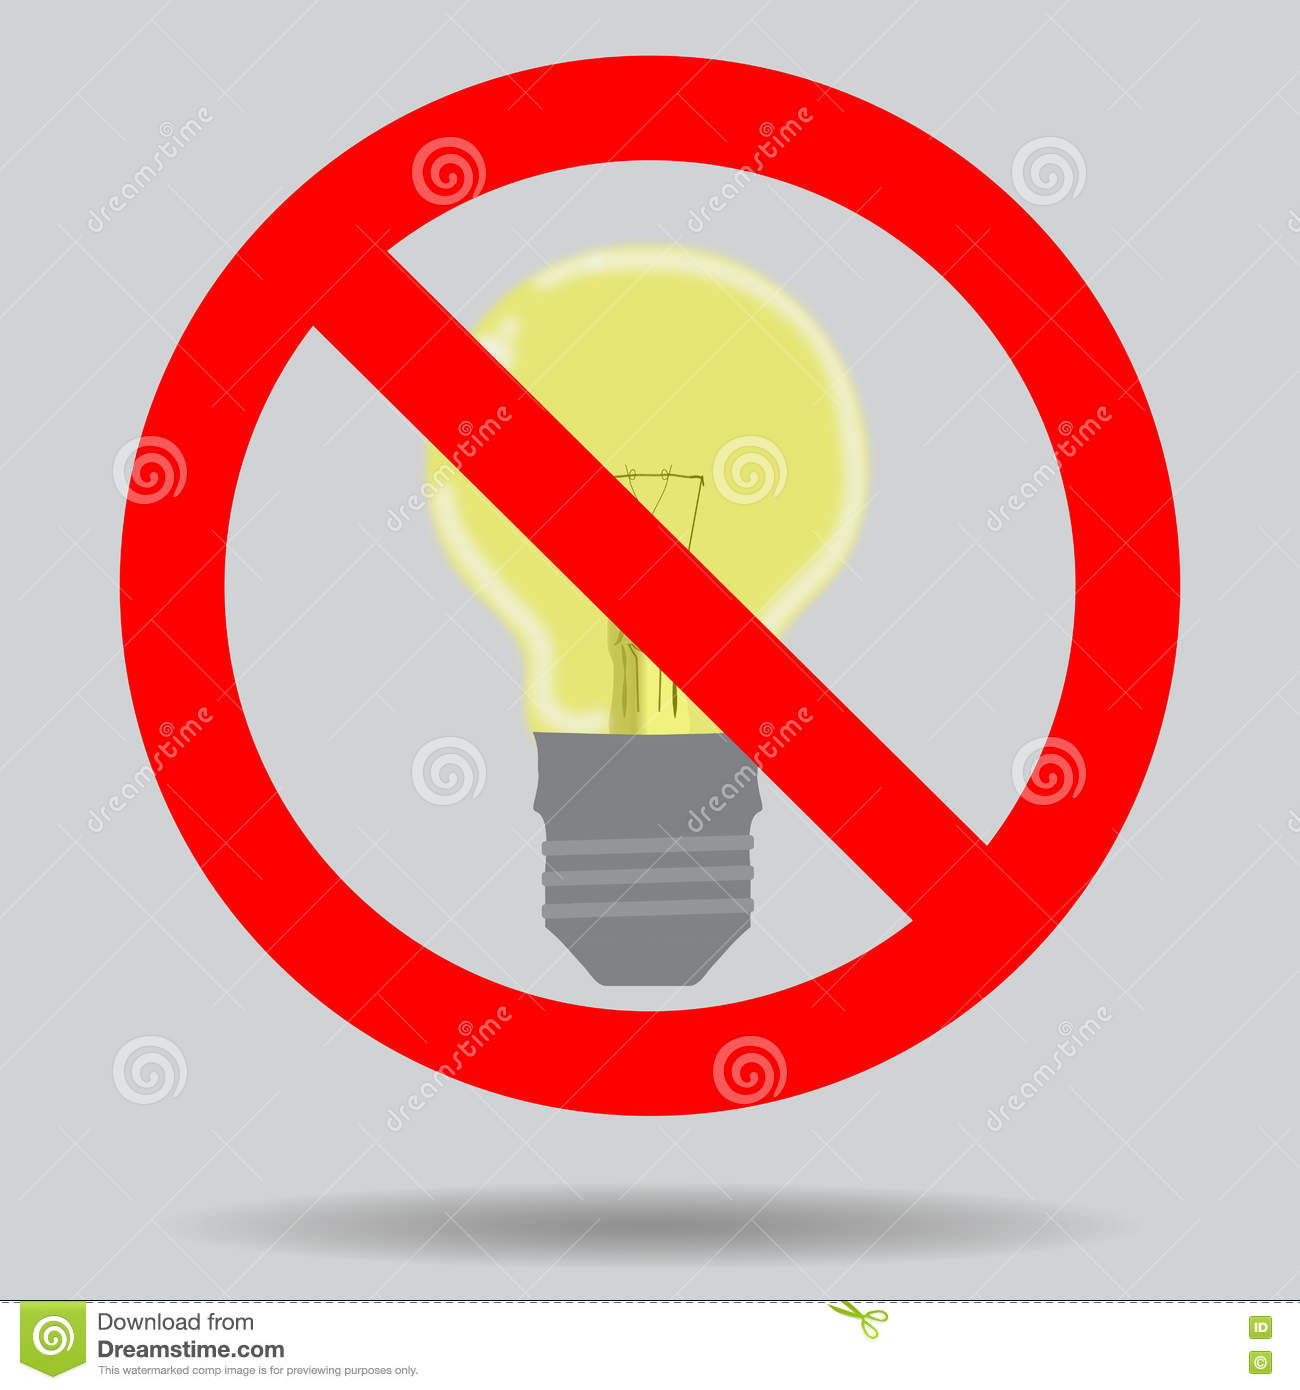 Sign Off The Light To Save Electricity Stock Illustration ... for Save Electricity Clipart  181obs